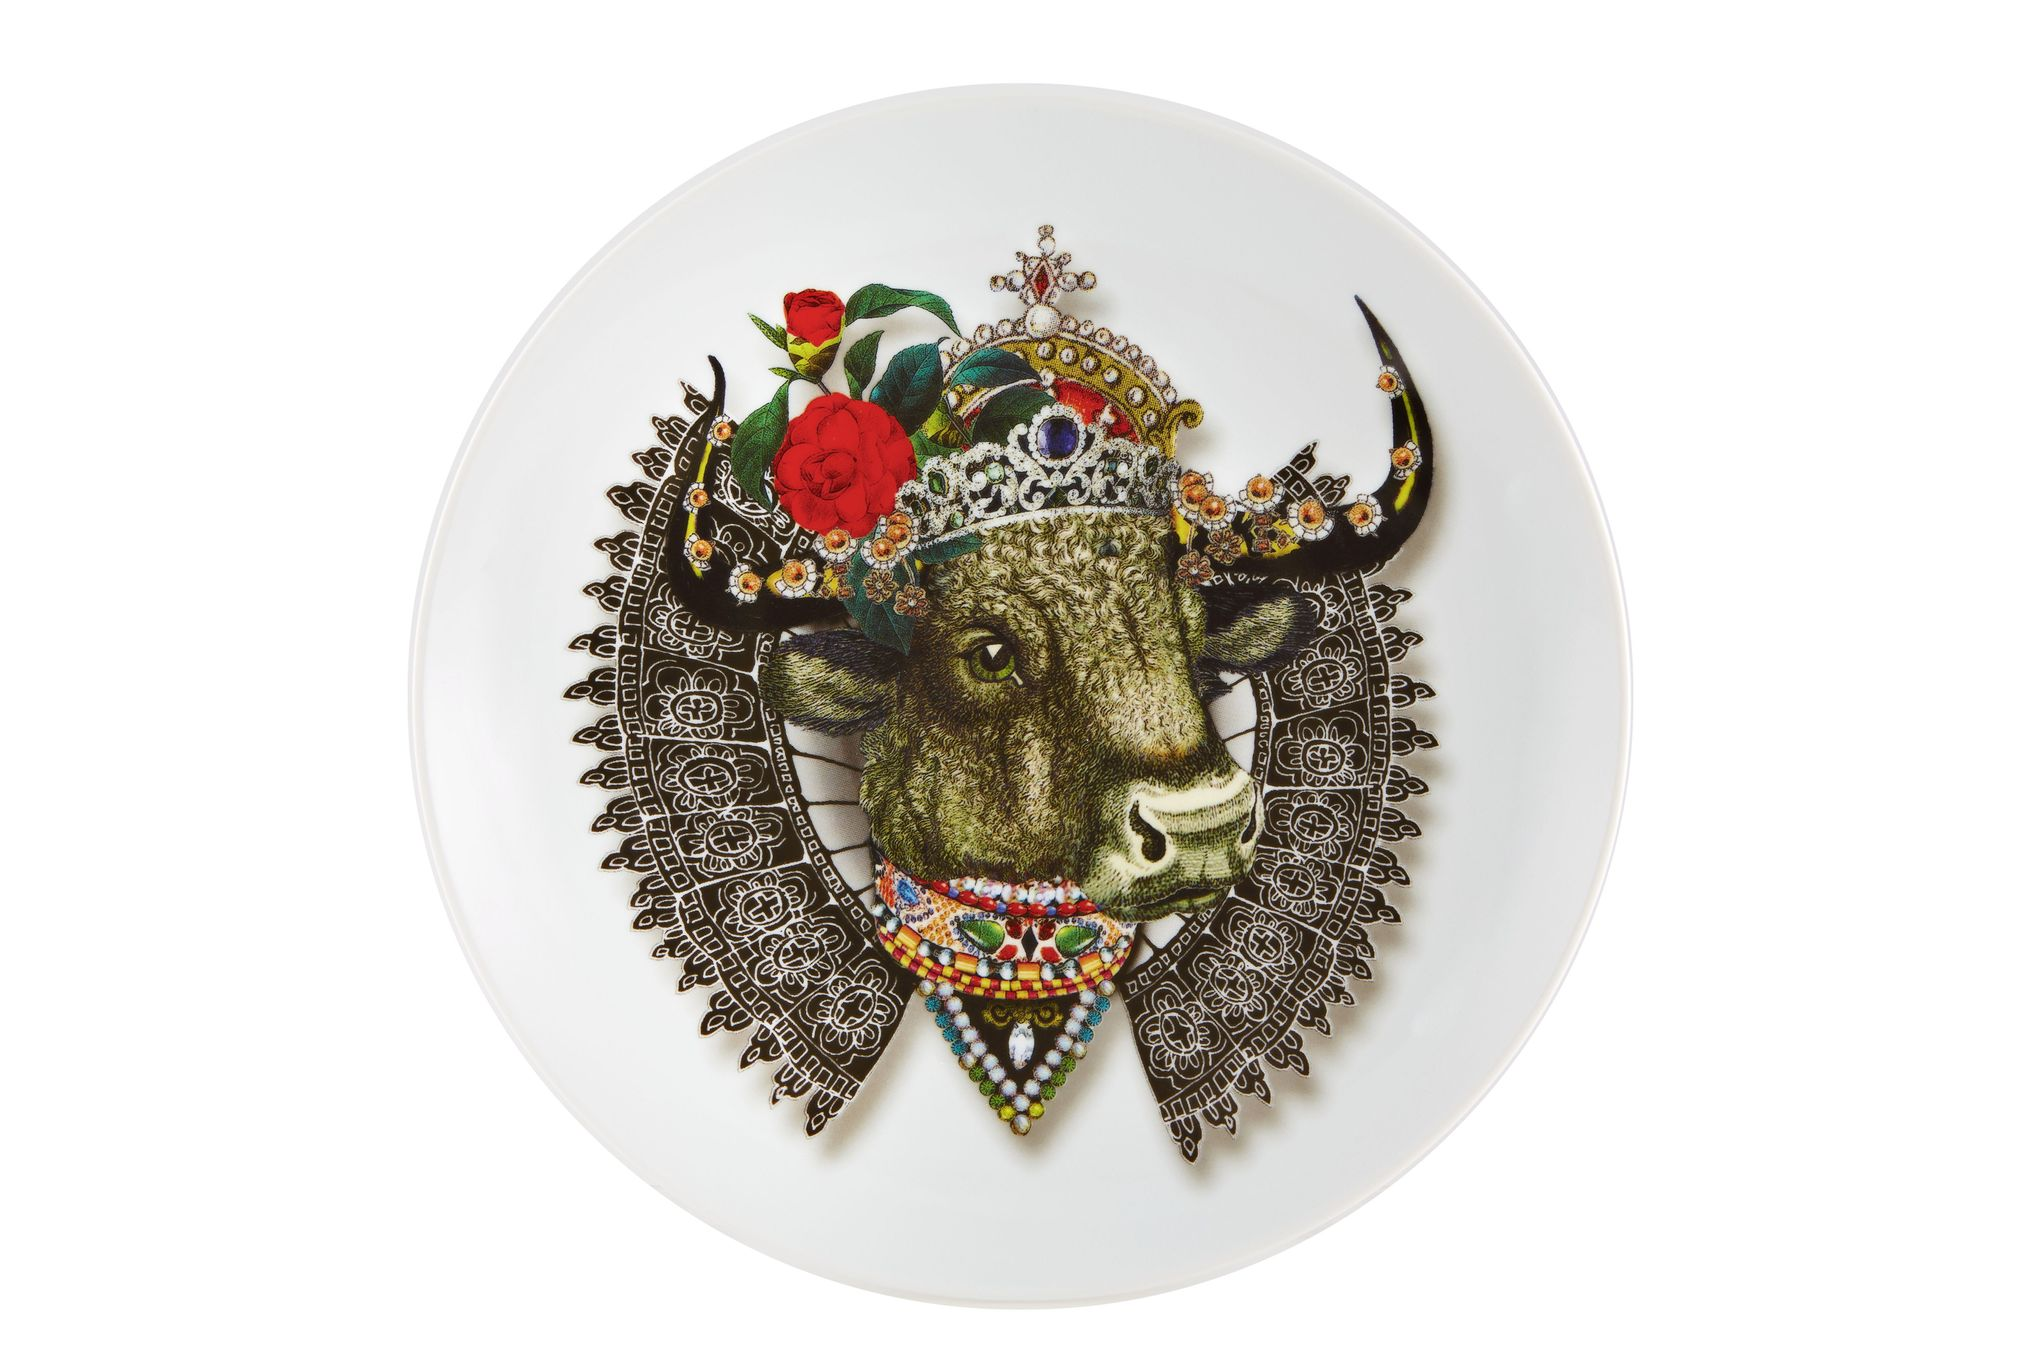 Christian Lacroix Love Who You Want Plate - Giftware Monseigneur Bull - Gift Boxed 23cm thumb 1